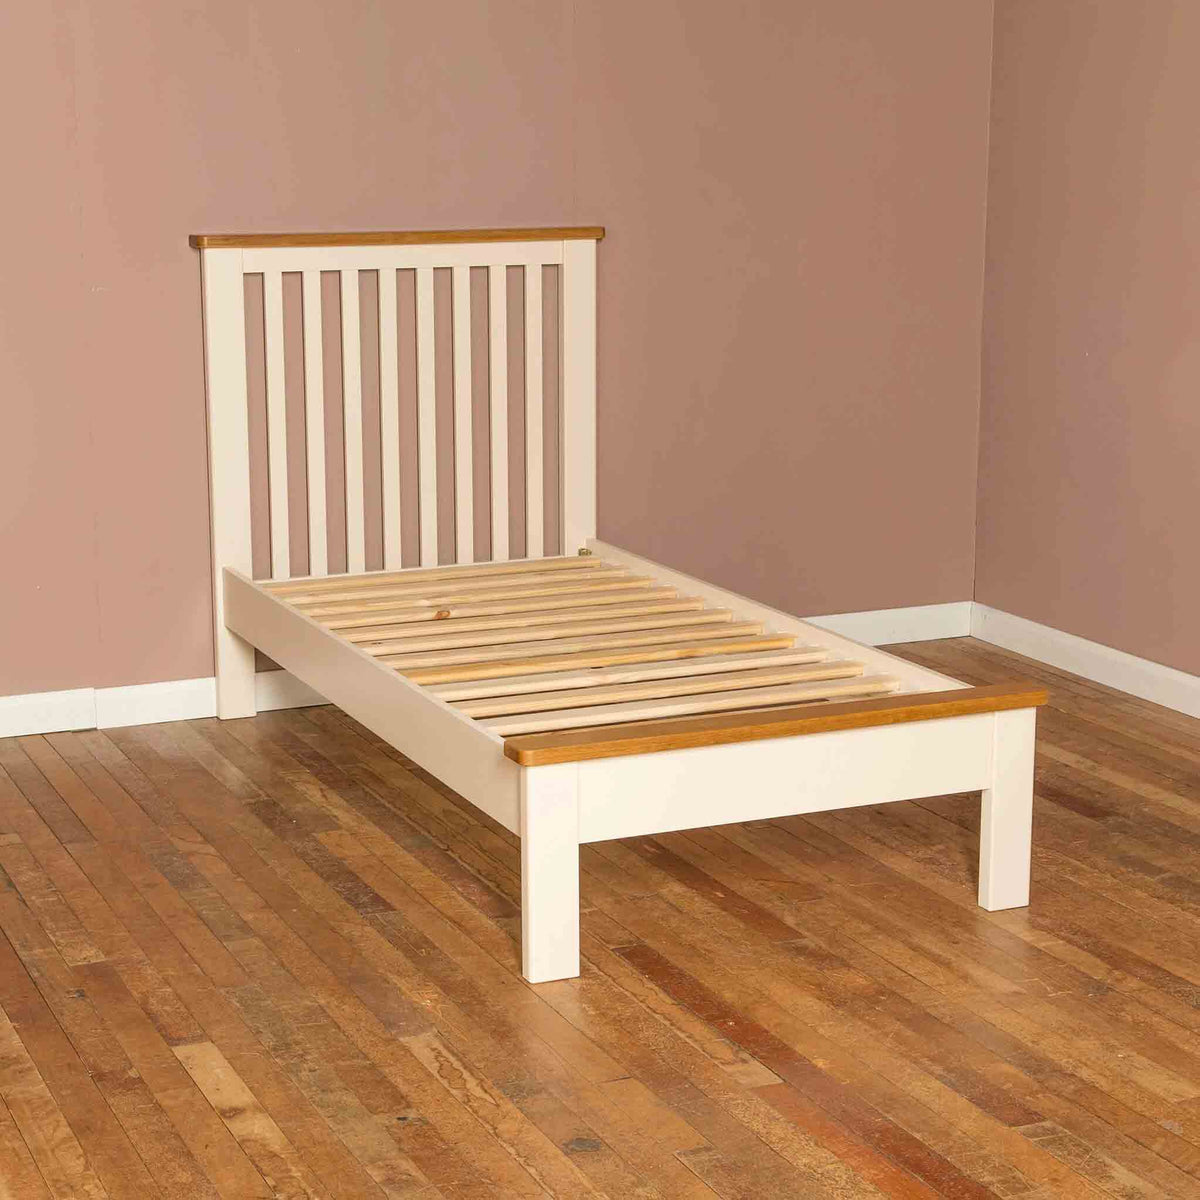 Side view of The Padstow Cream 3 ft Wooden Kids Single Bed Frame